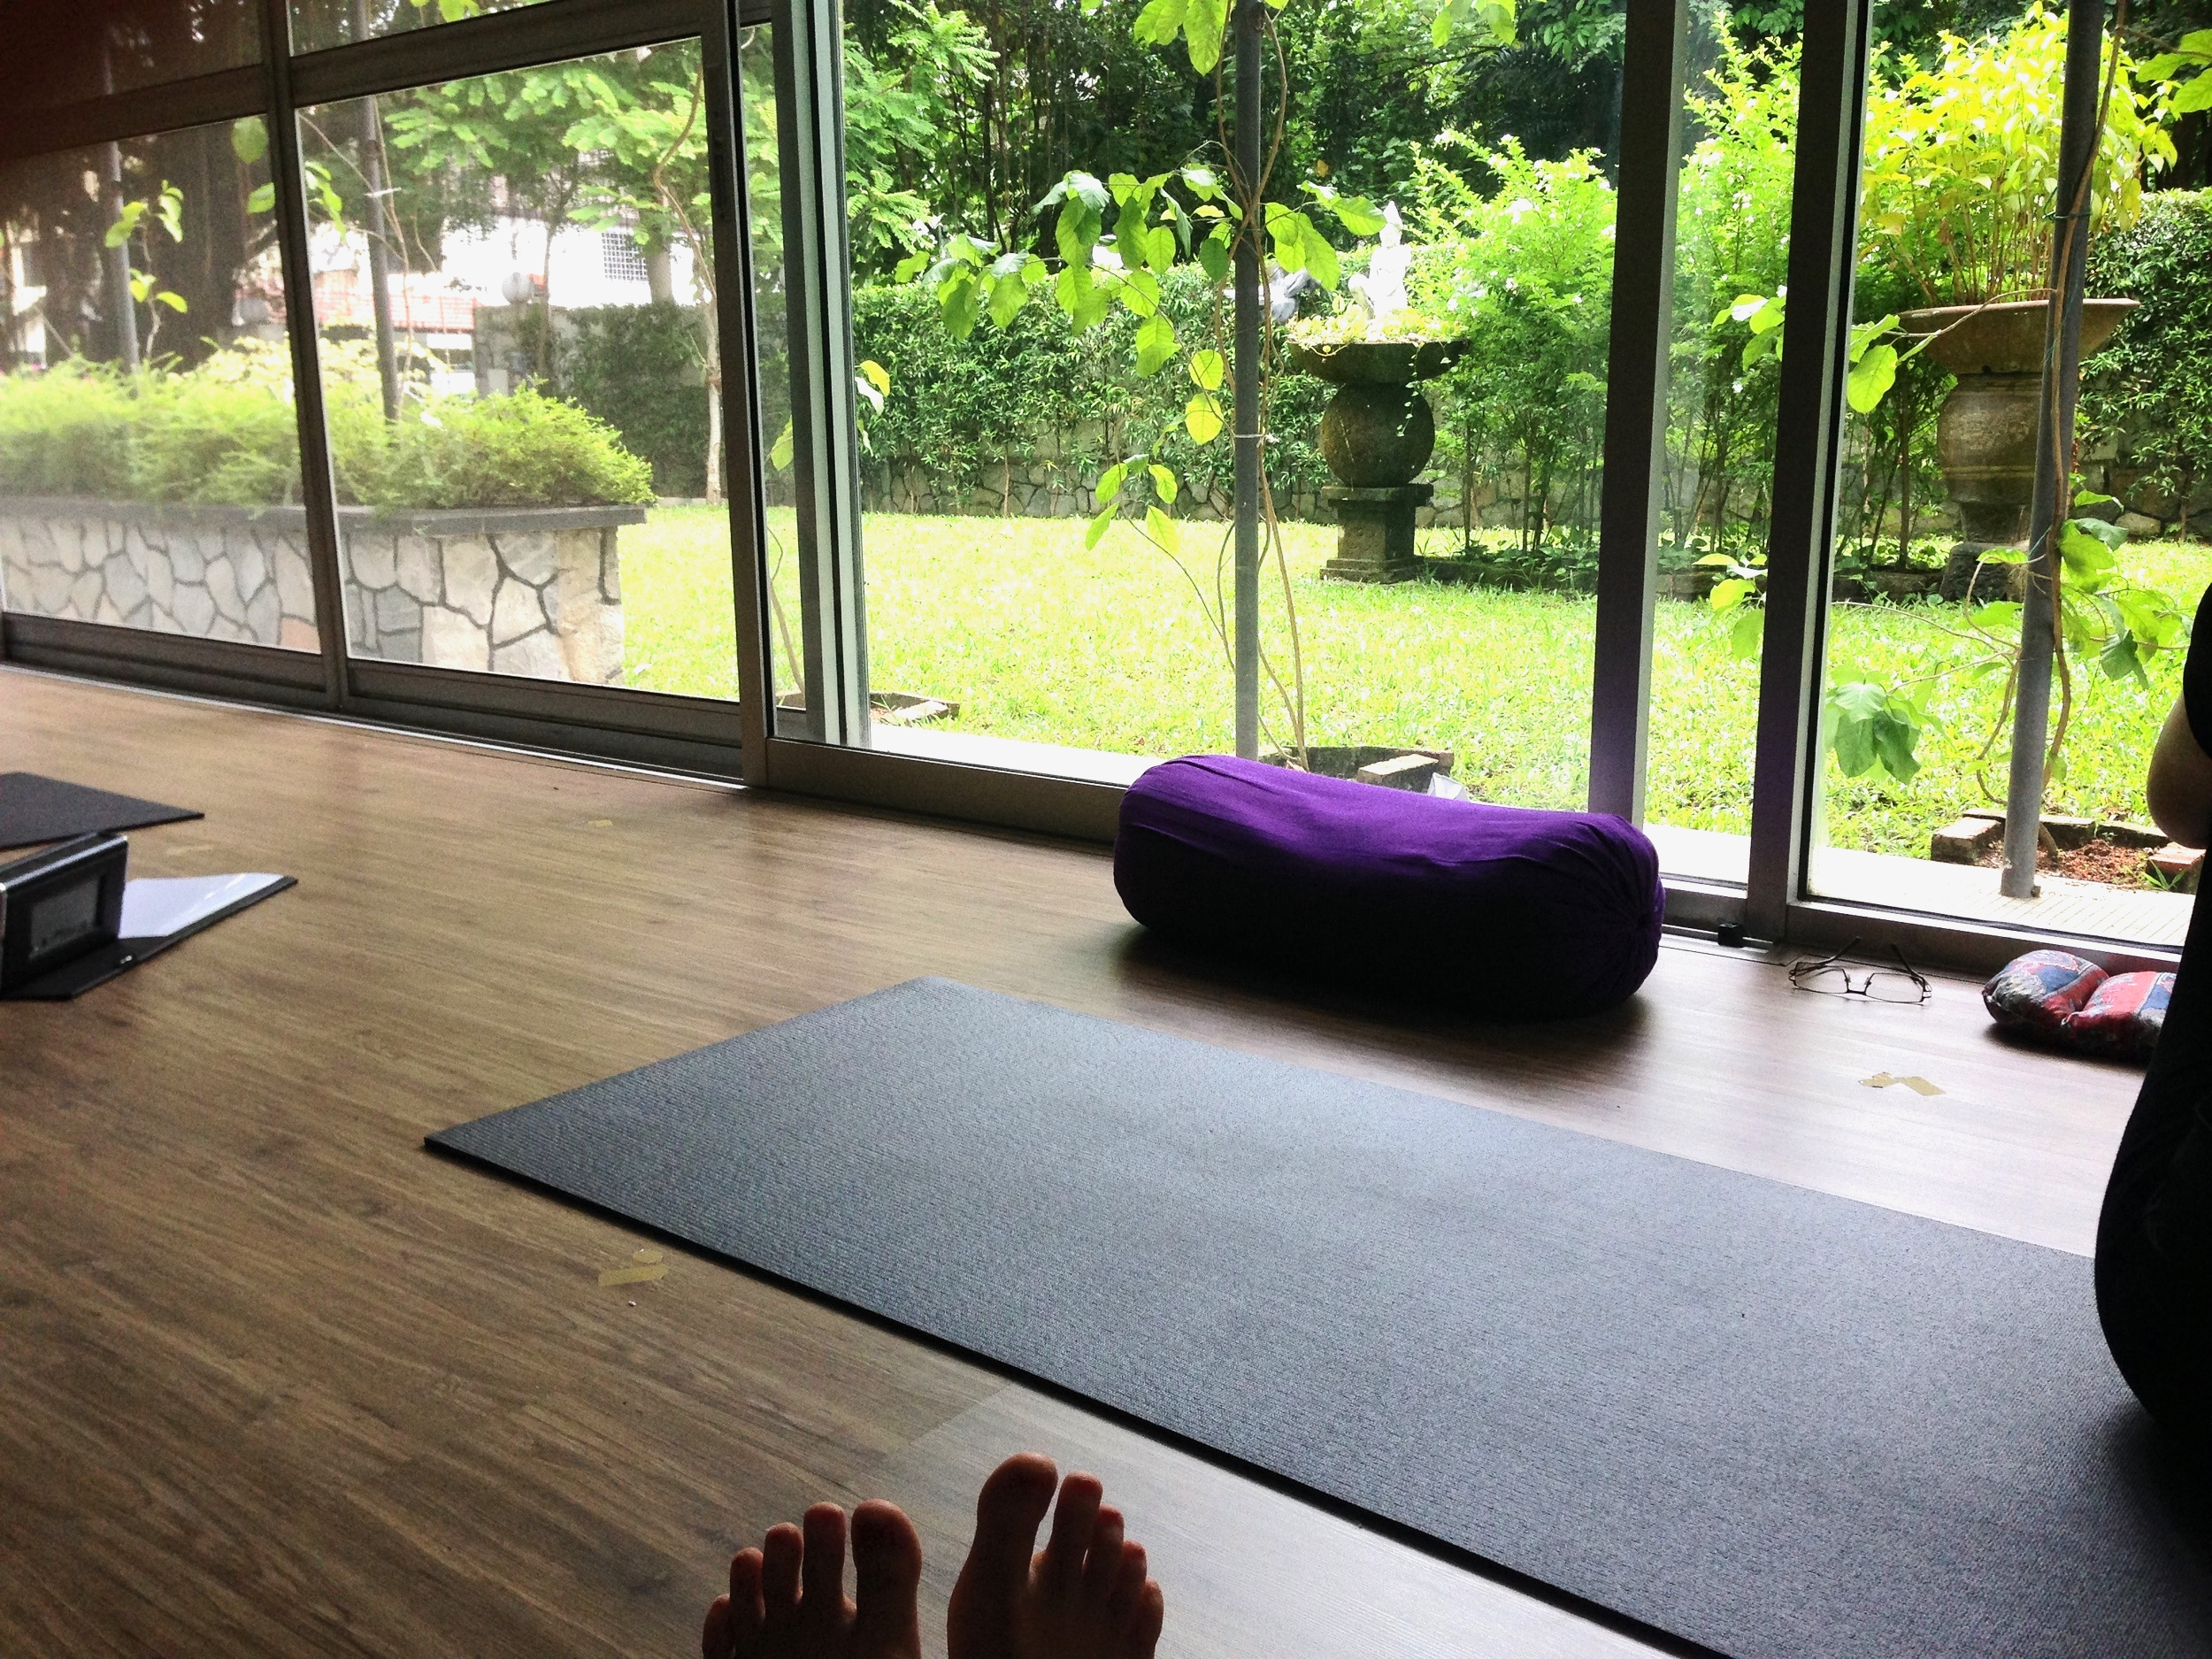 Yogshakti: My home for the next month